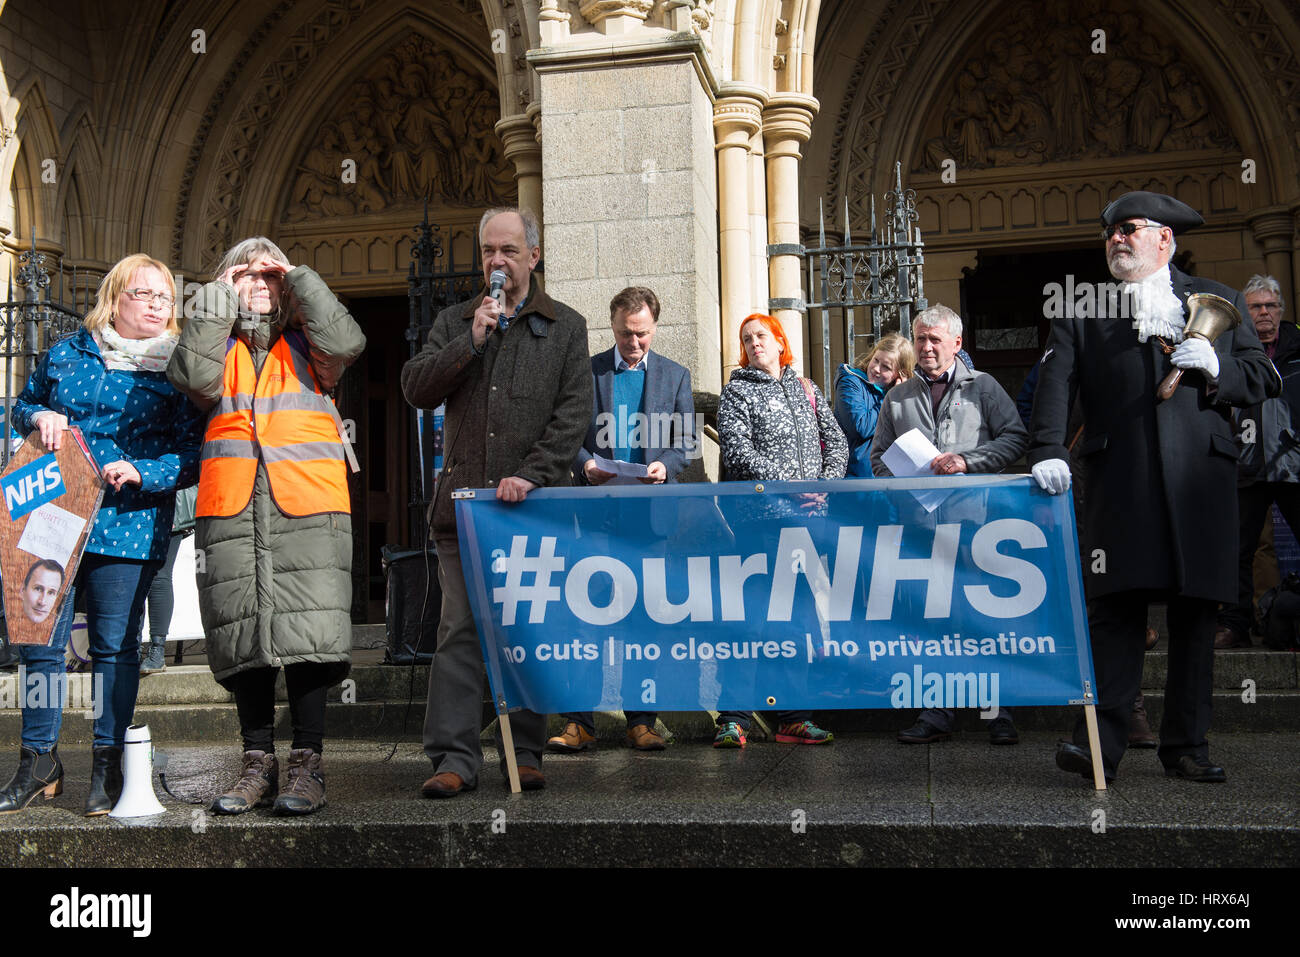 Truro, UK. 04th Mar, 2017. Stuart Roden, Labour Parliamentary Candidate for Falmouth and Truro, speaks to a crowd - Stock Image